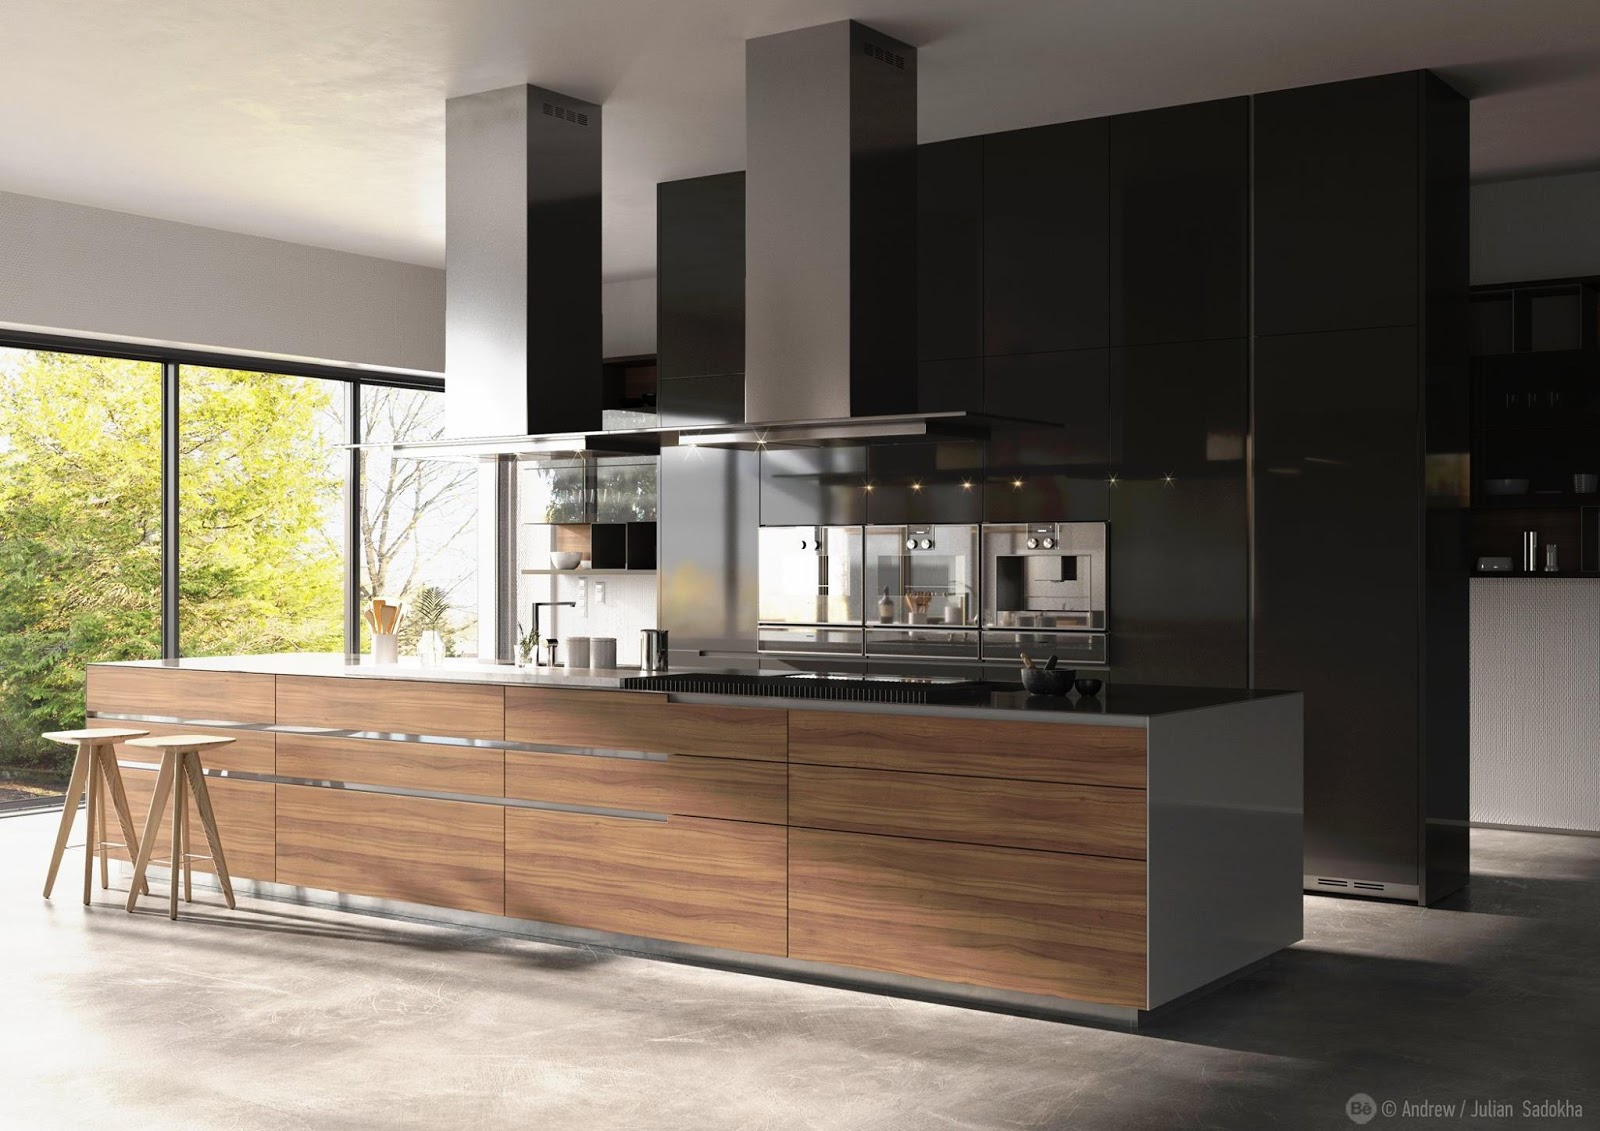 Poliform Kitchen Design. While surfing on Facebook this morning I saw stunning kitchen design  from Poliform It s the Varenna Kitchen What a beauty KITCHENS Stunning by ByElisabethNL